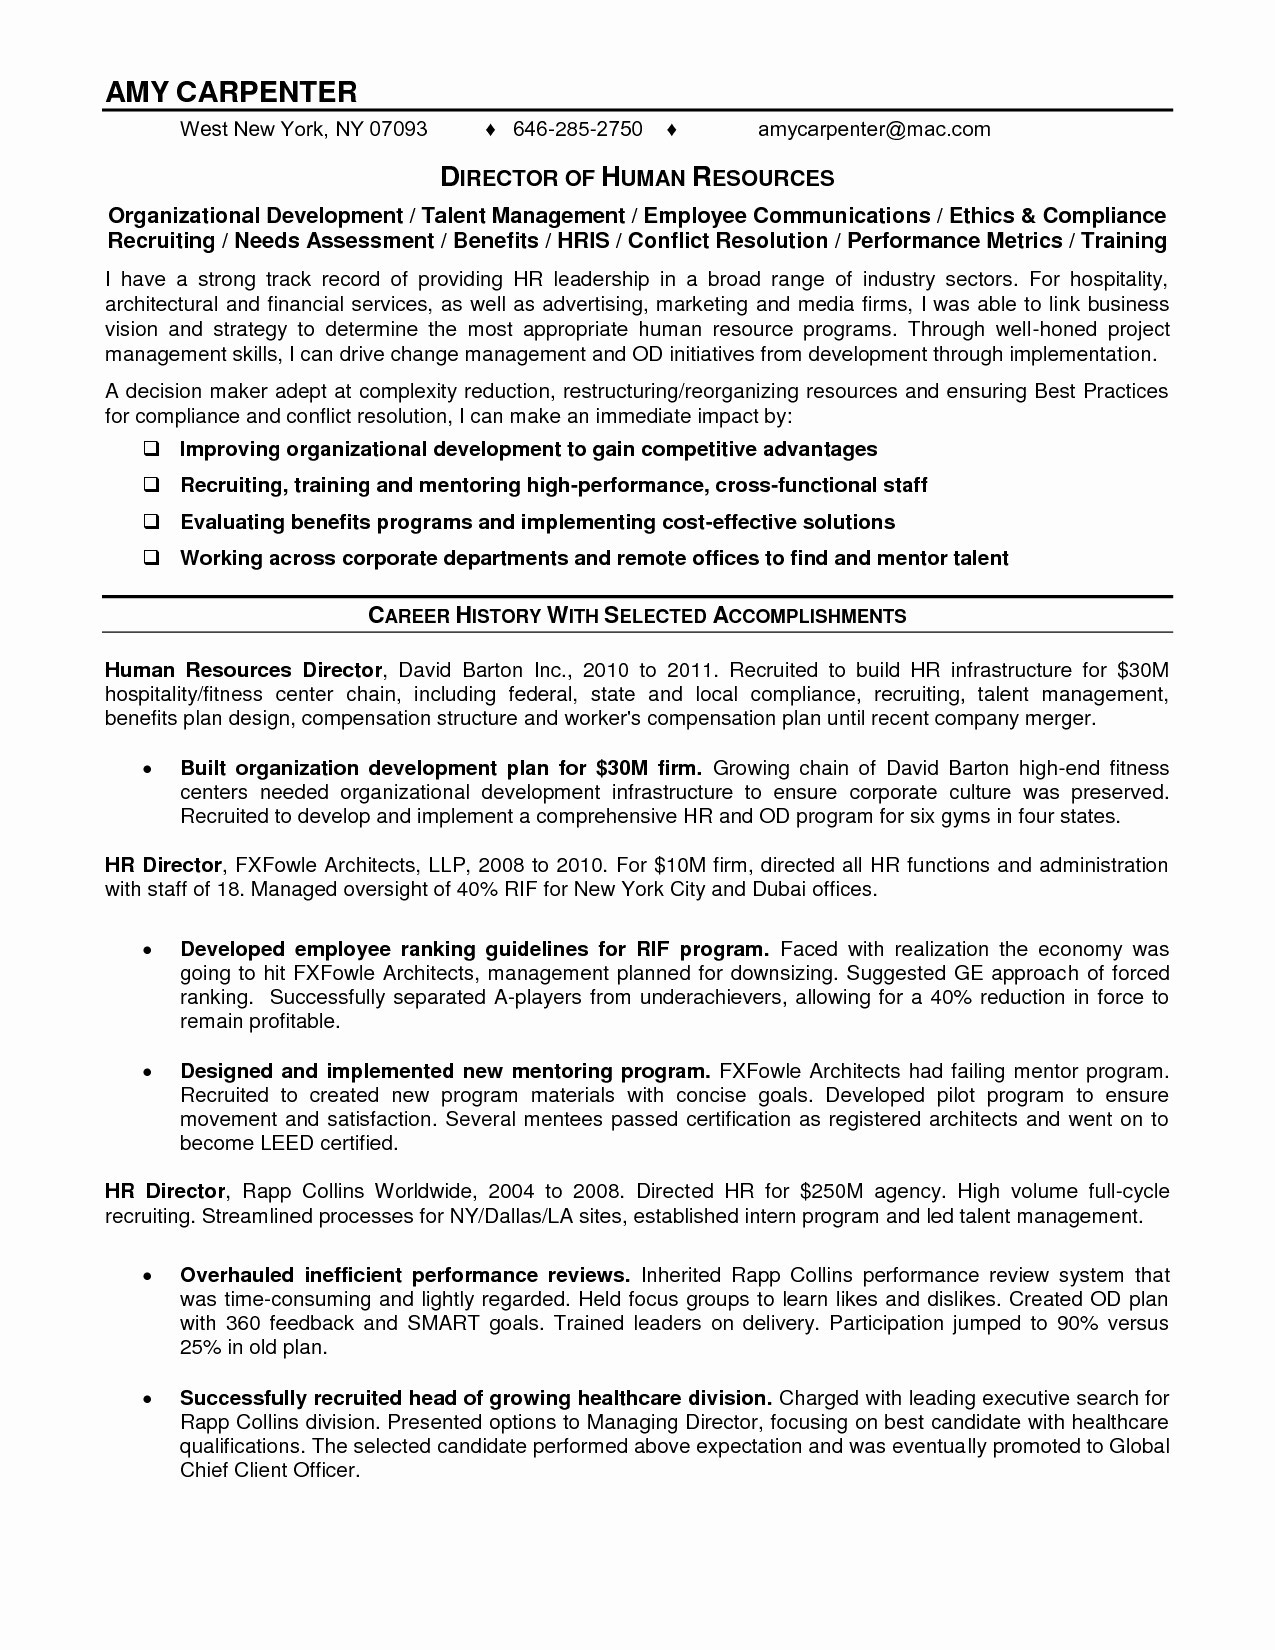 Contract Termination Letter Template - Business Development Contract Template Best Contract Termination